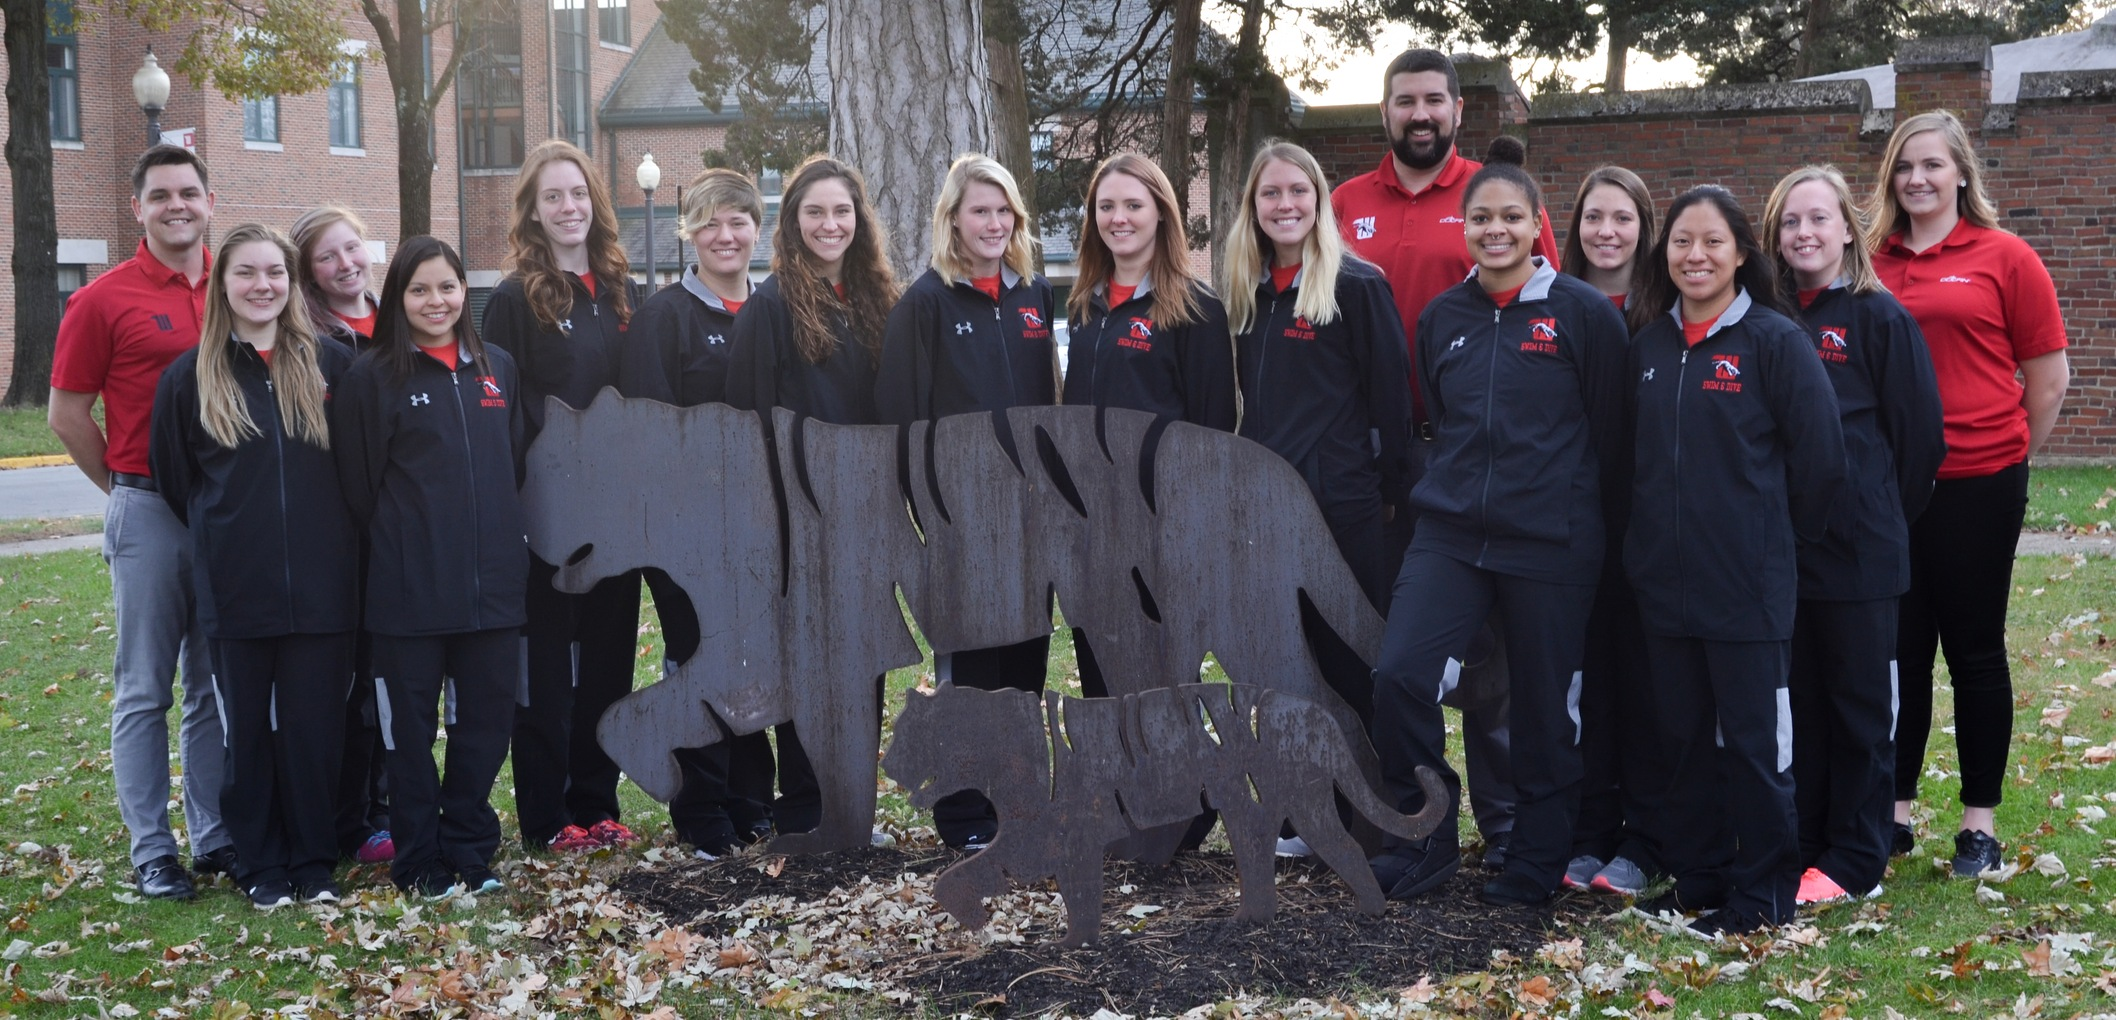 2017-18 Wittenberg Women's Swimming and Diving